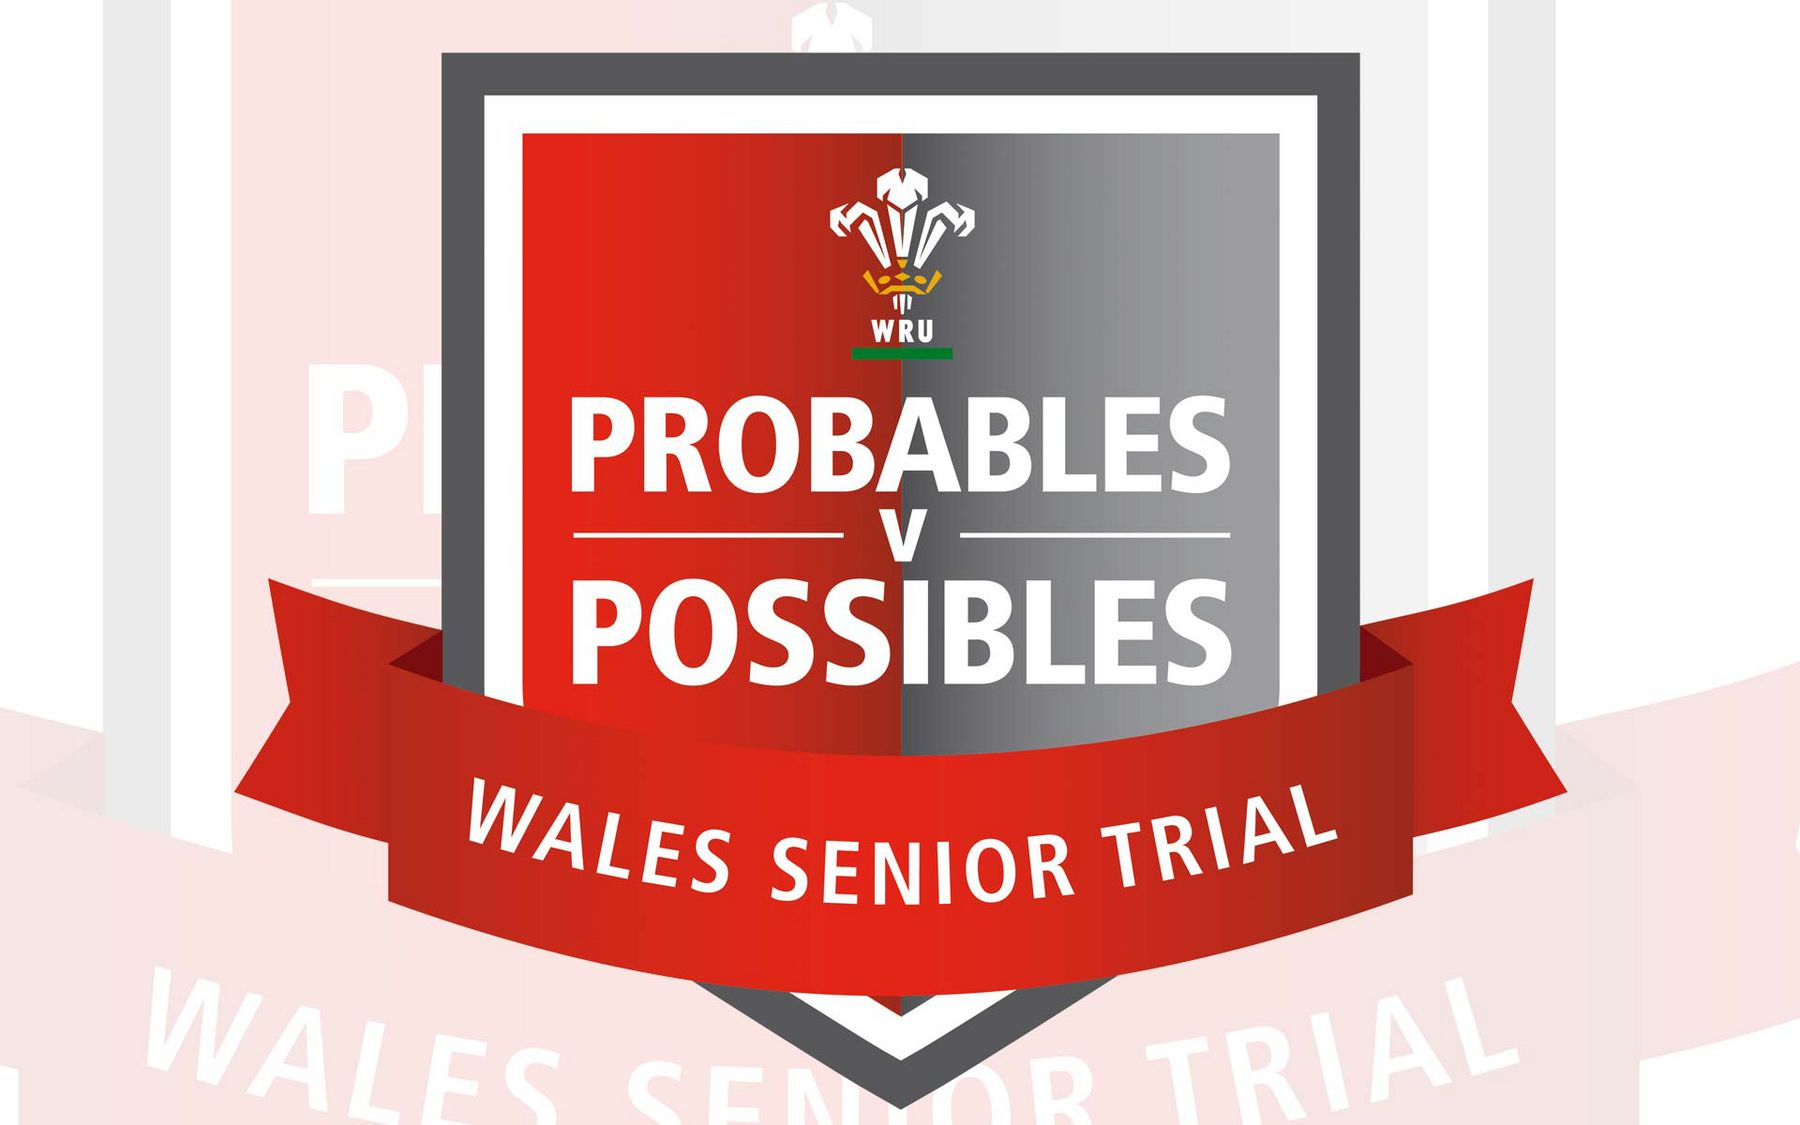 Match Day Details: Wales Senior Trial